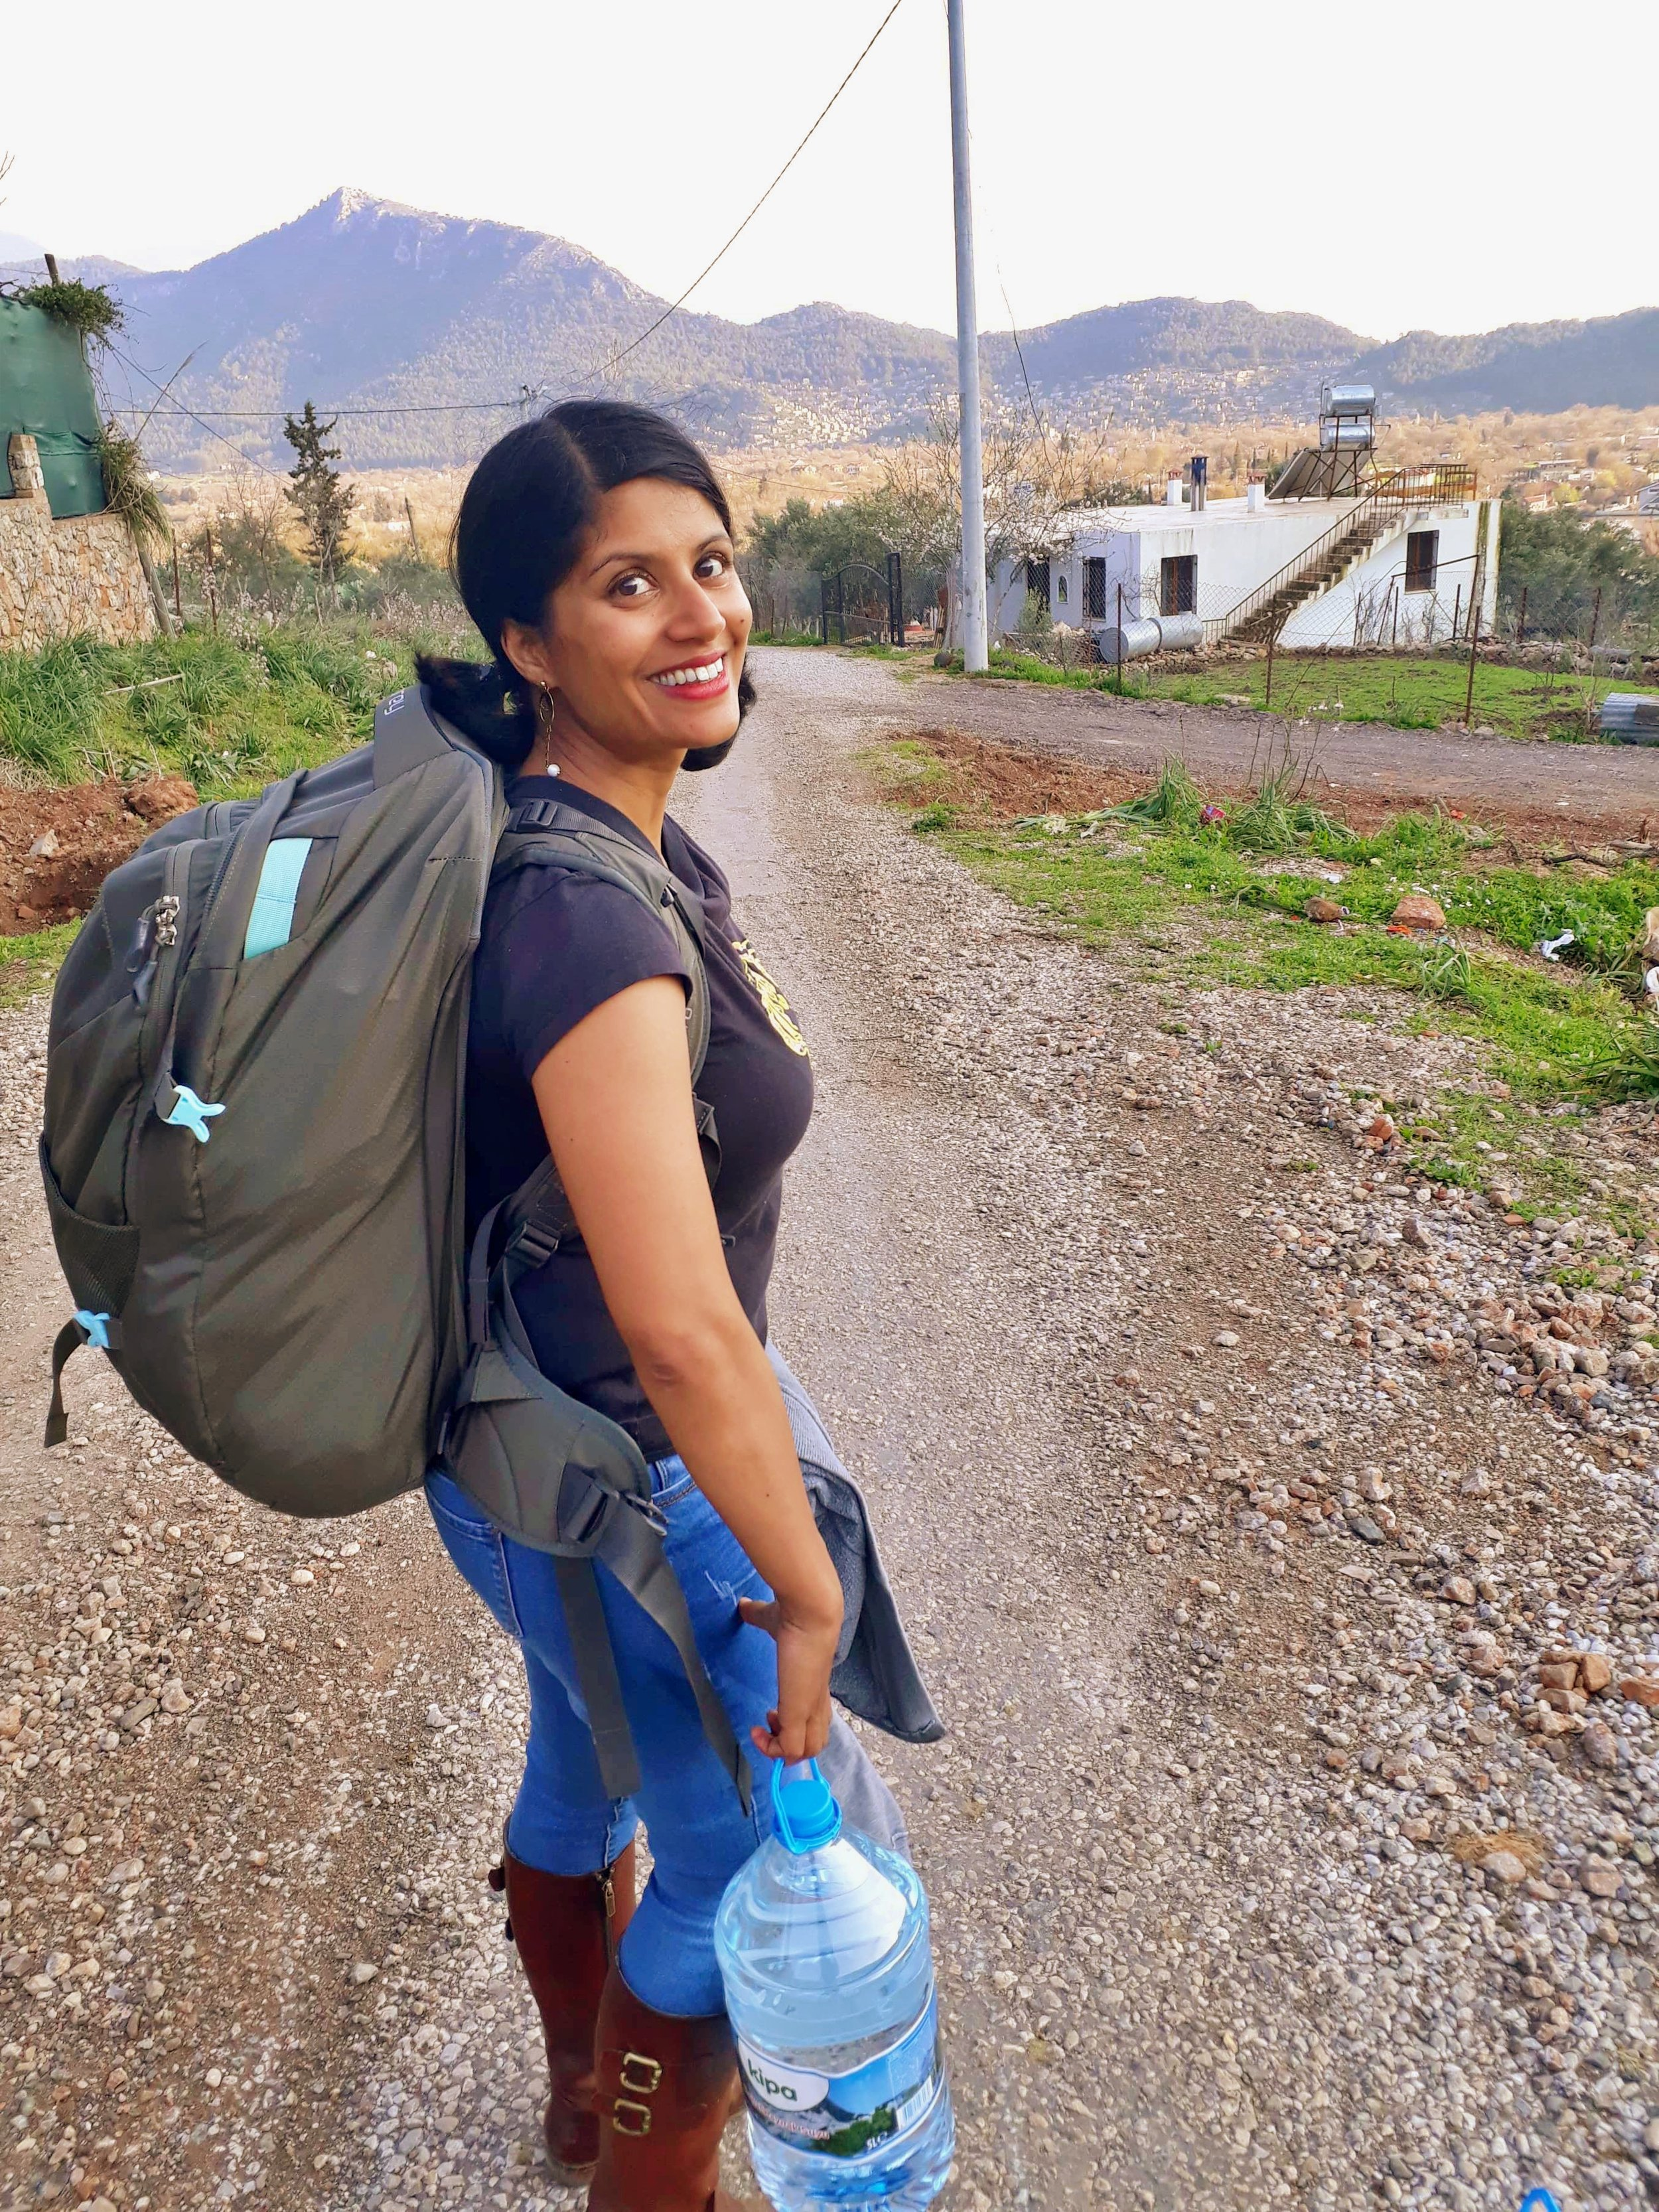 Still smiling despite the fact that it feels like I am carrying all the world's food on my back. The reality of village life with no car in Turkey.